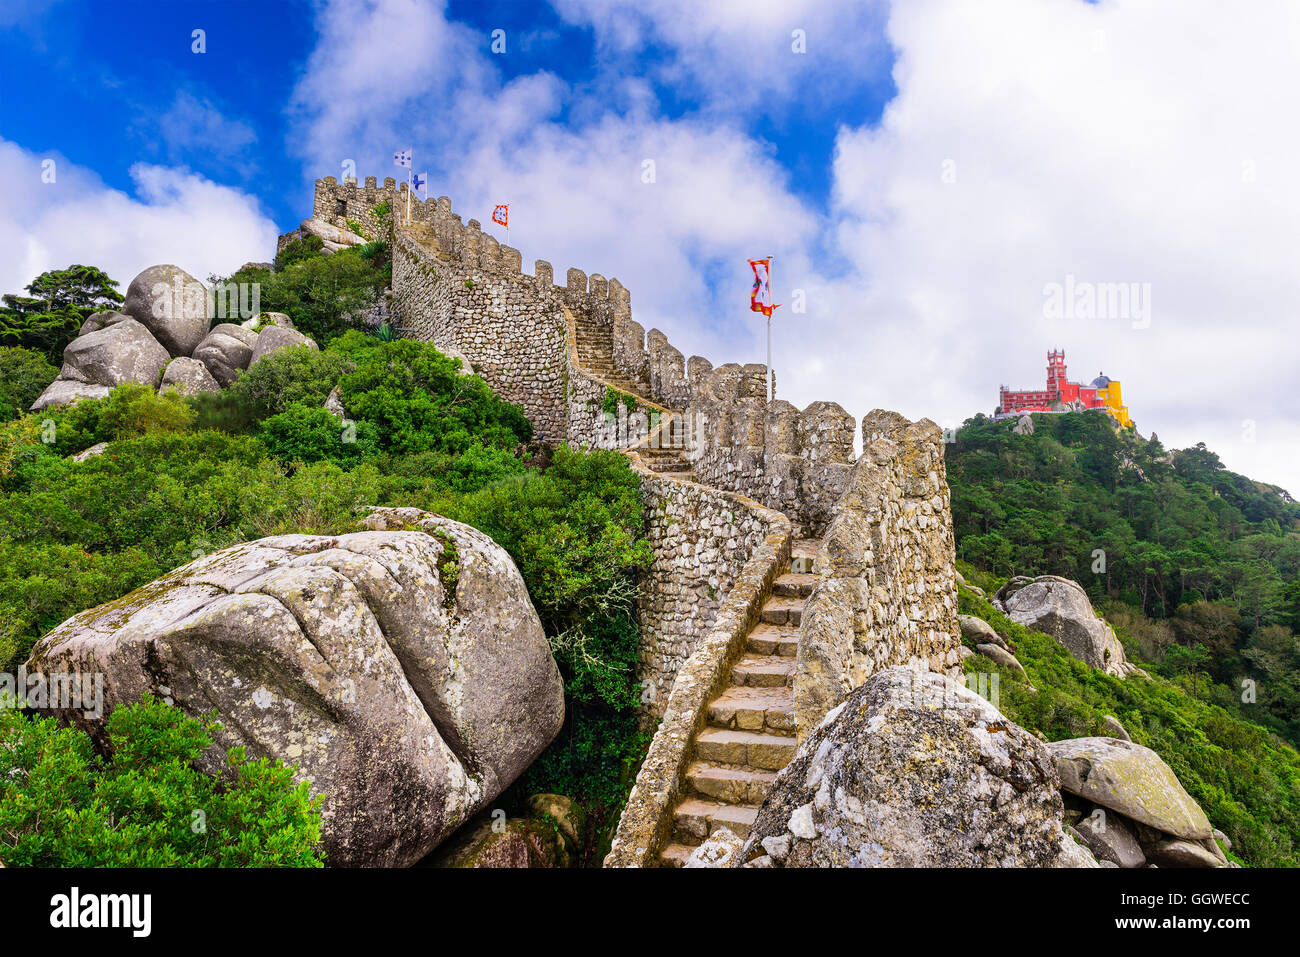 Sintra, Portugal at Castle of the Moors wall with Pena National Palace in the distance. - Stock Image